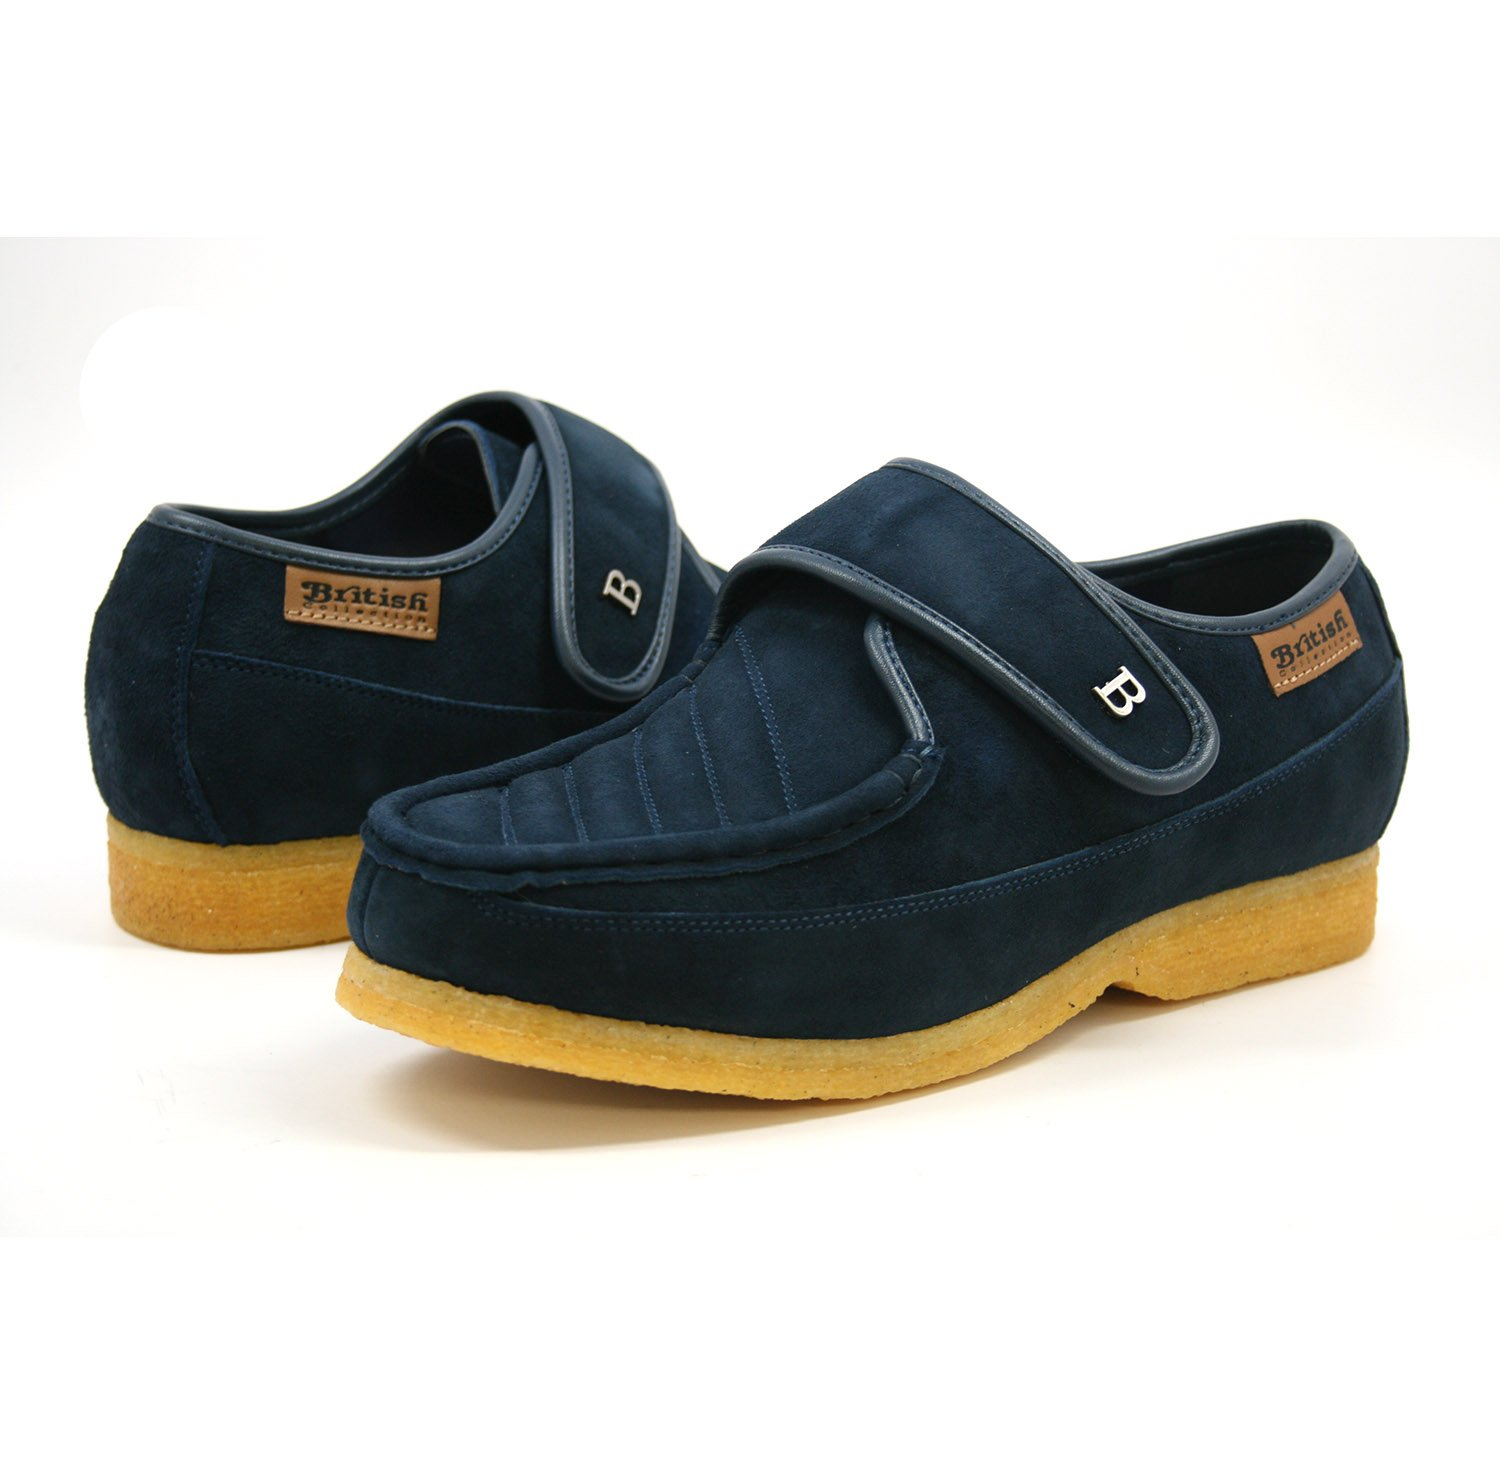 British Collection Royal Old School Slip On Shoes 9.5M Navy Leather by British Collection (Image #1)